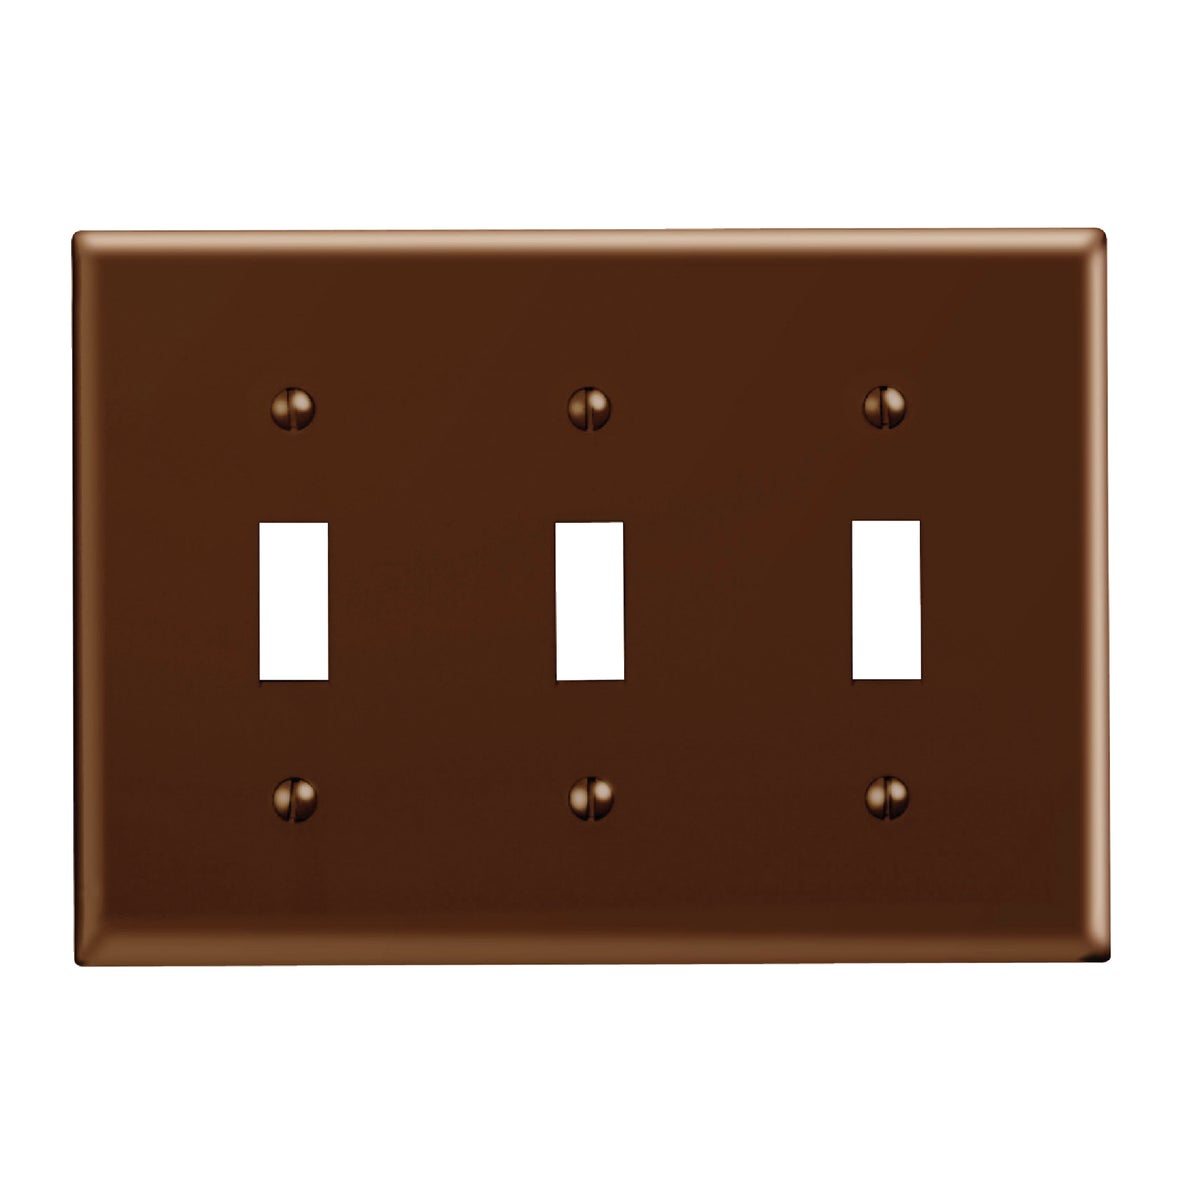 BRN 3-TOGGLE WALL PLATE - 85011 by Leviton Mfg Co